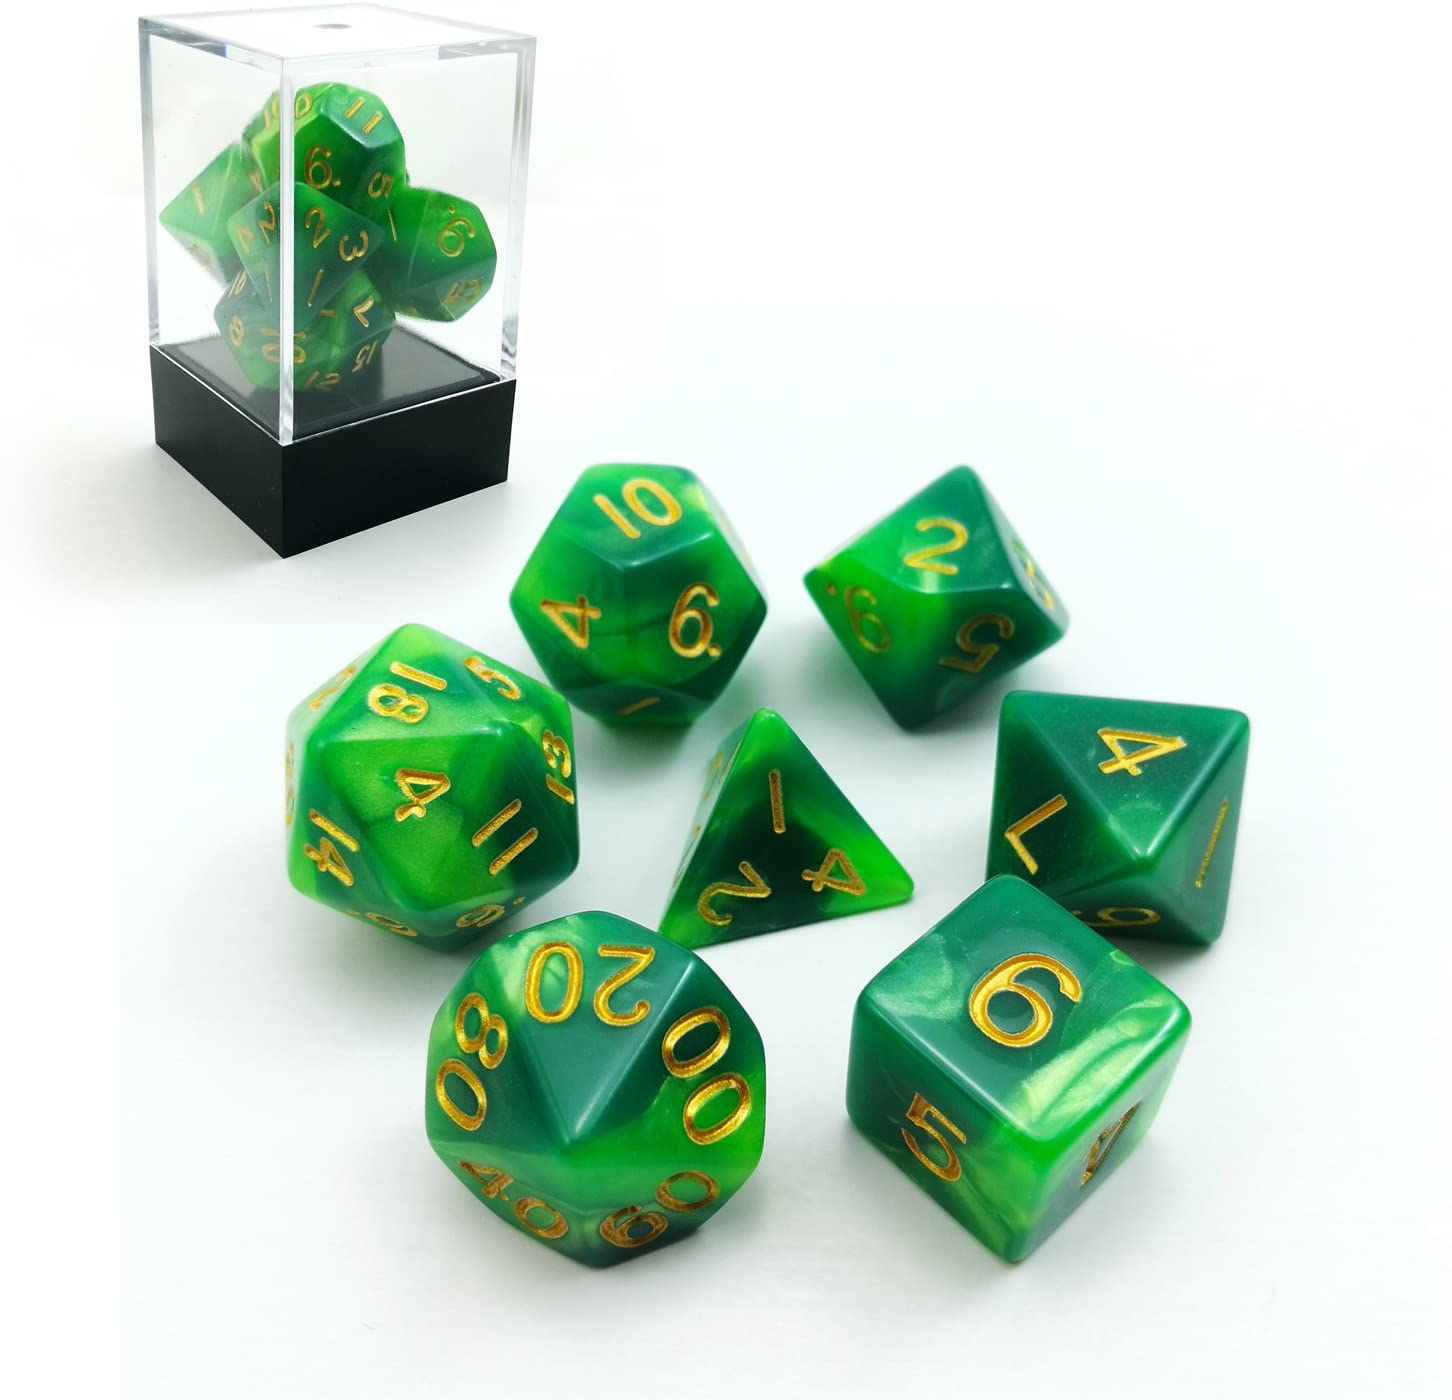 Swirled Two Tone Swirled Green RPG Dice Set of 7 in Brick Box Package, Complete Polyhedral Dice Set of d4 d6 d8 d10 d12 d20 d%